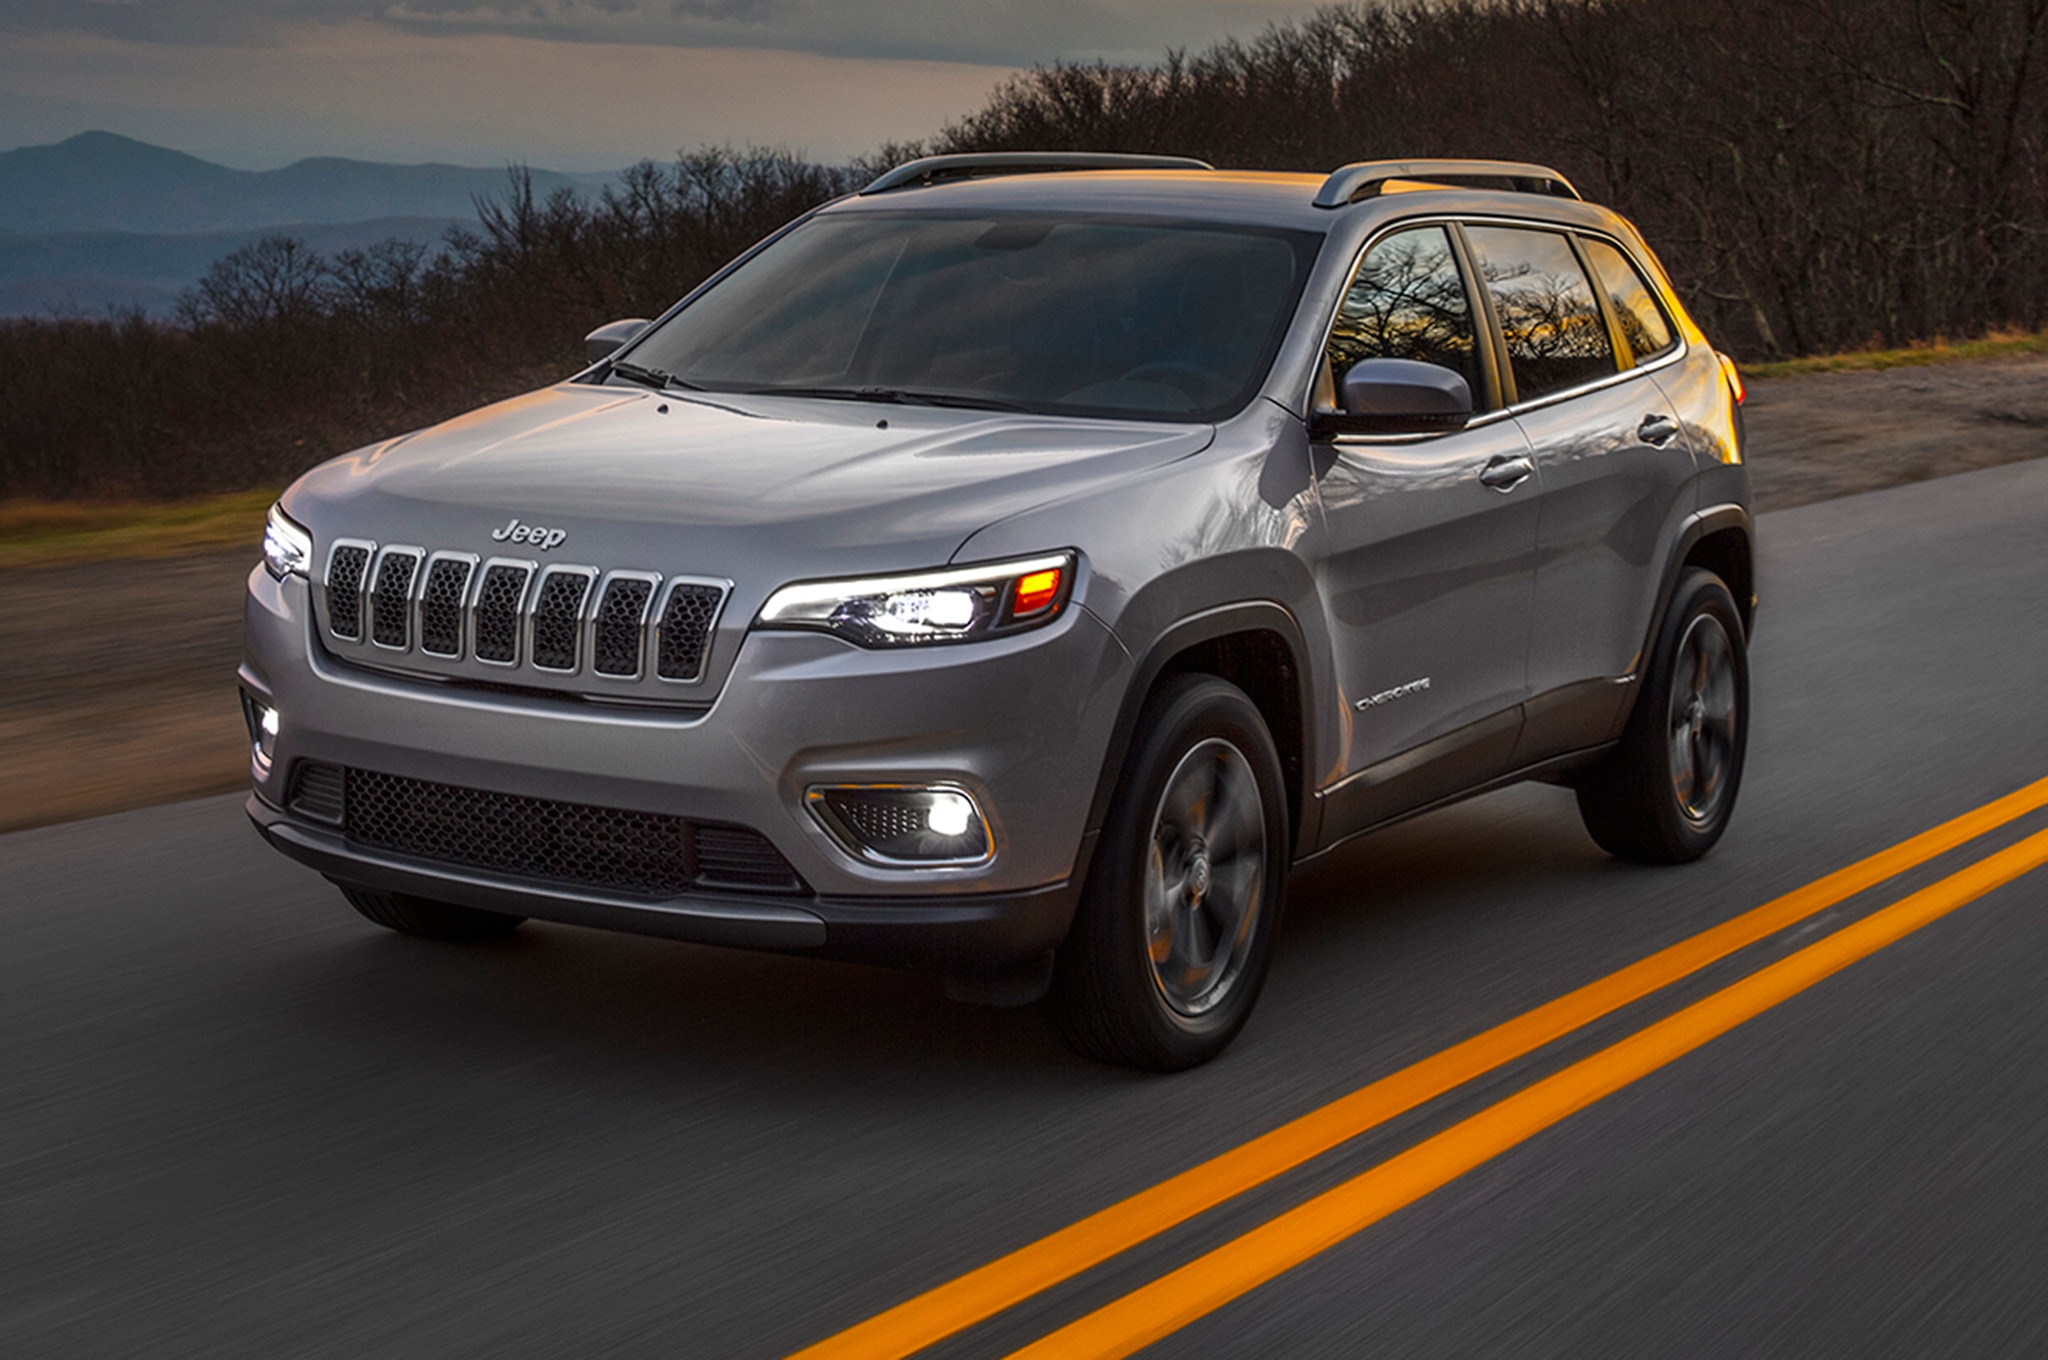 2019 Jeep Cherokee Front Three Quarter In Motion 09